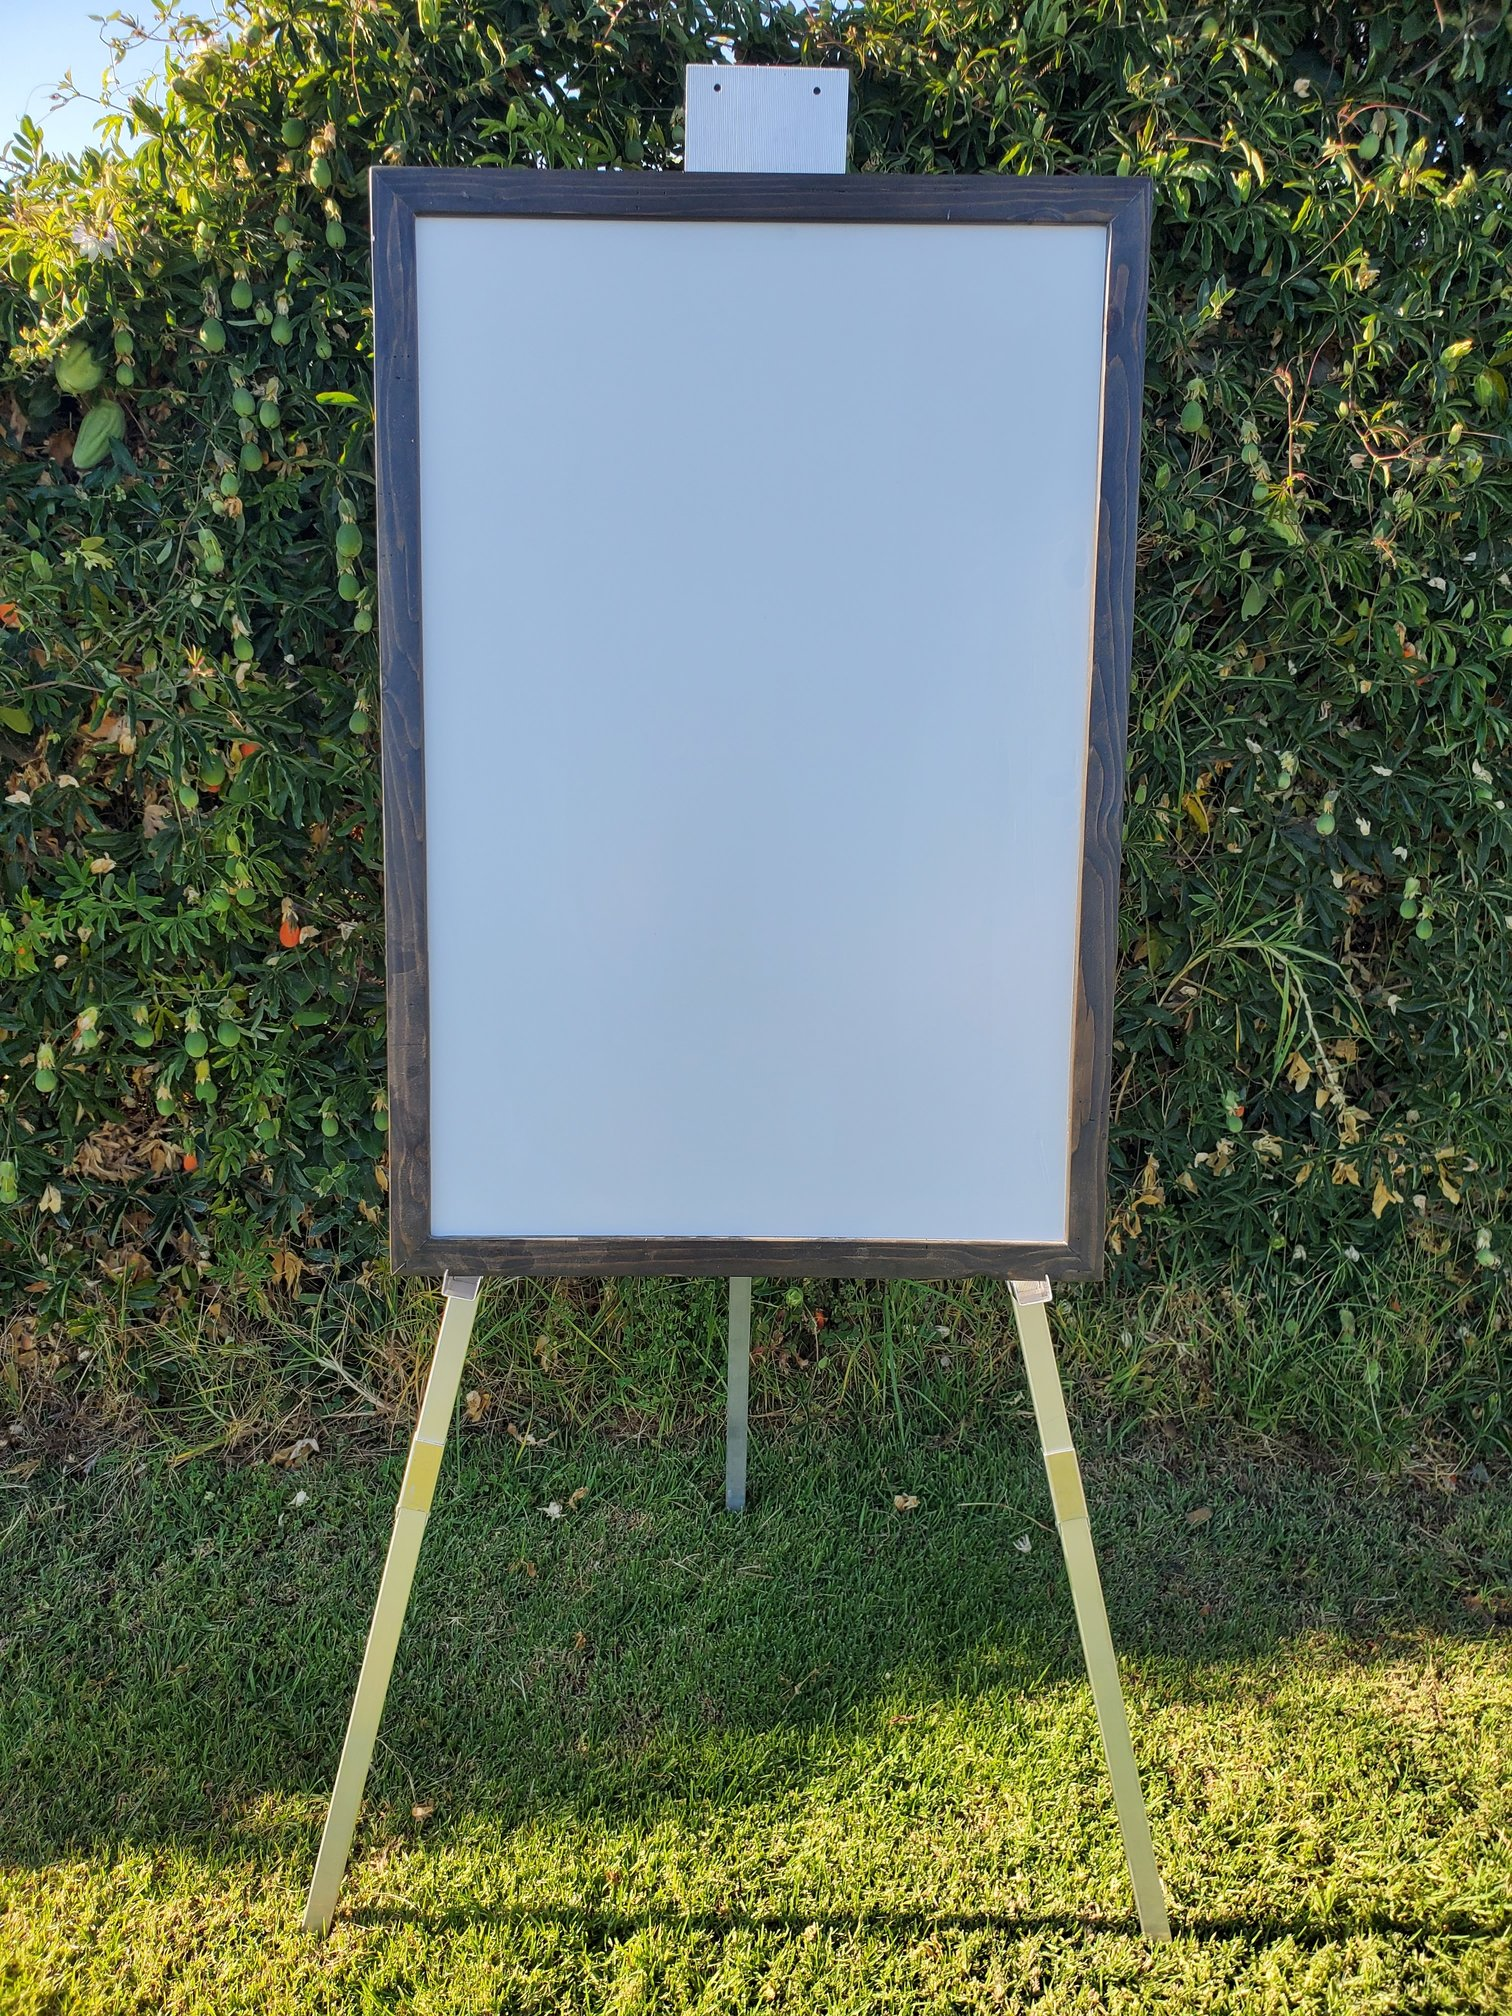 whiteboard, easel, giant backyard game rental